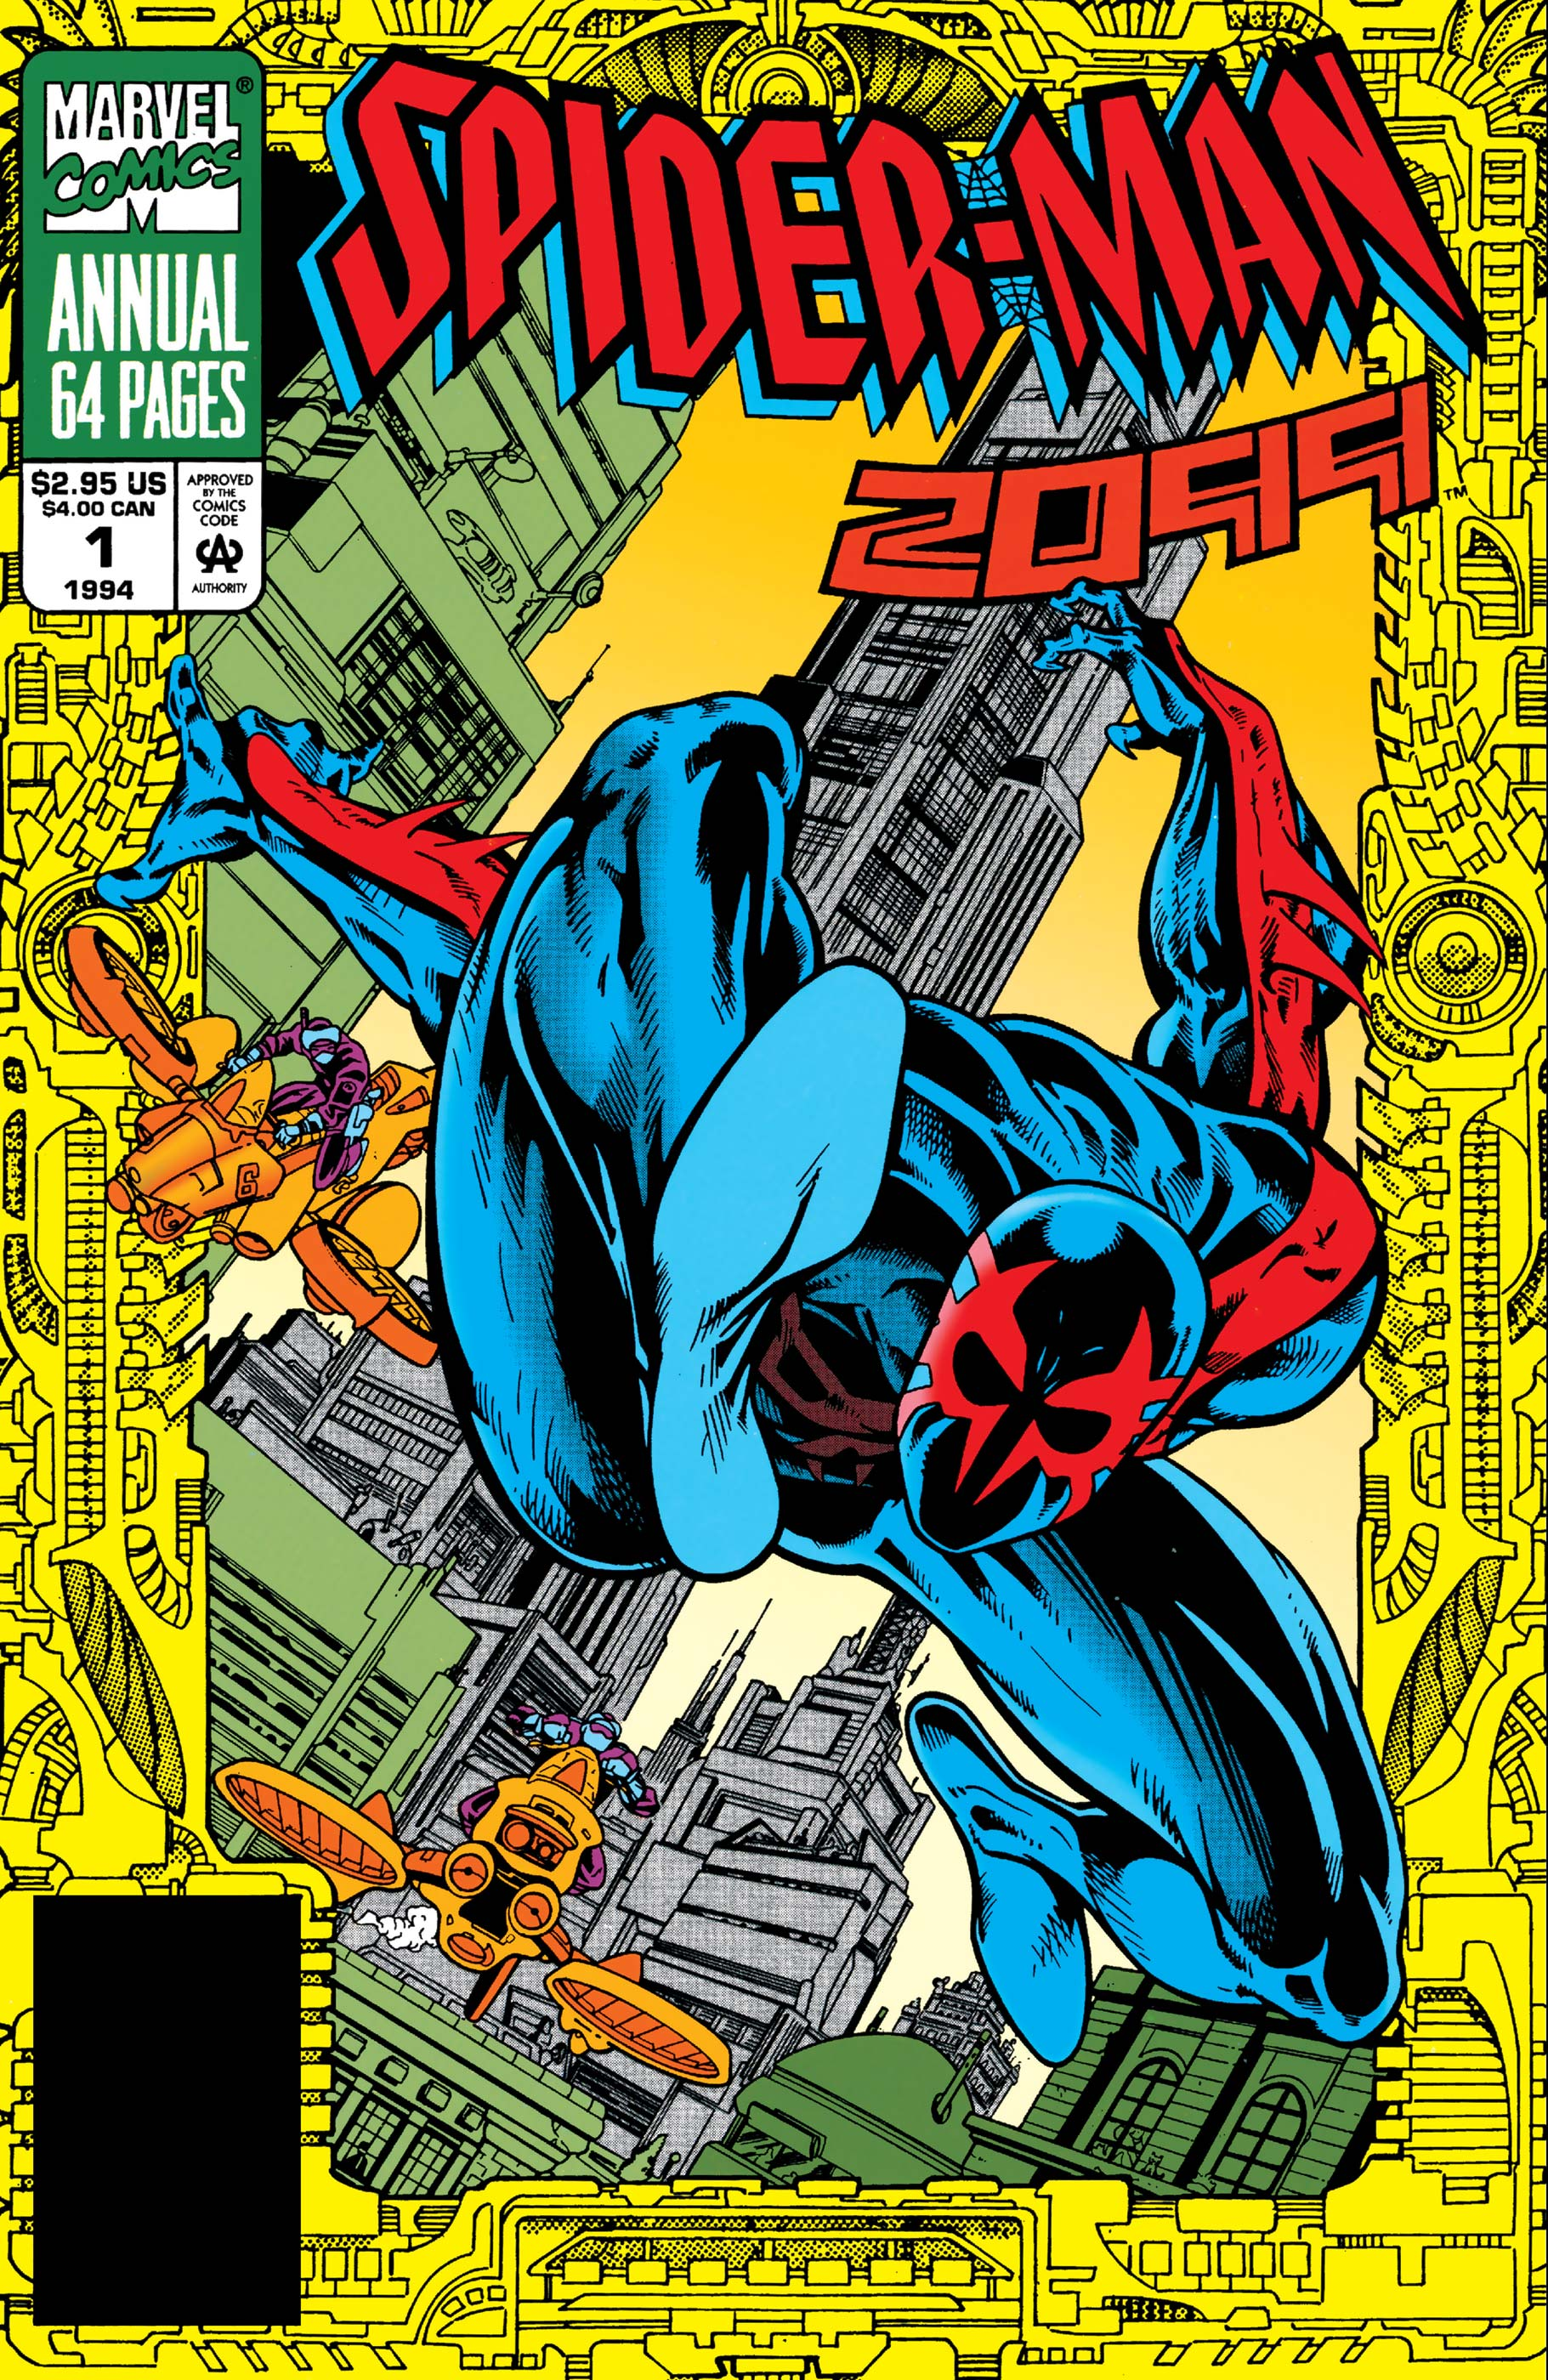 Spider-Man 2099 Annual (1994) #1